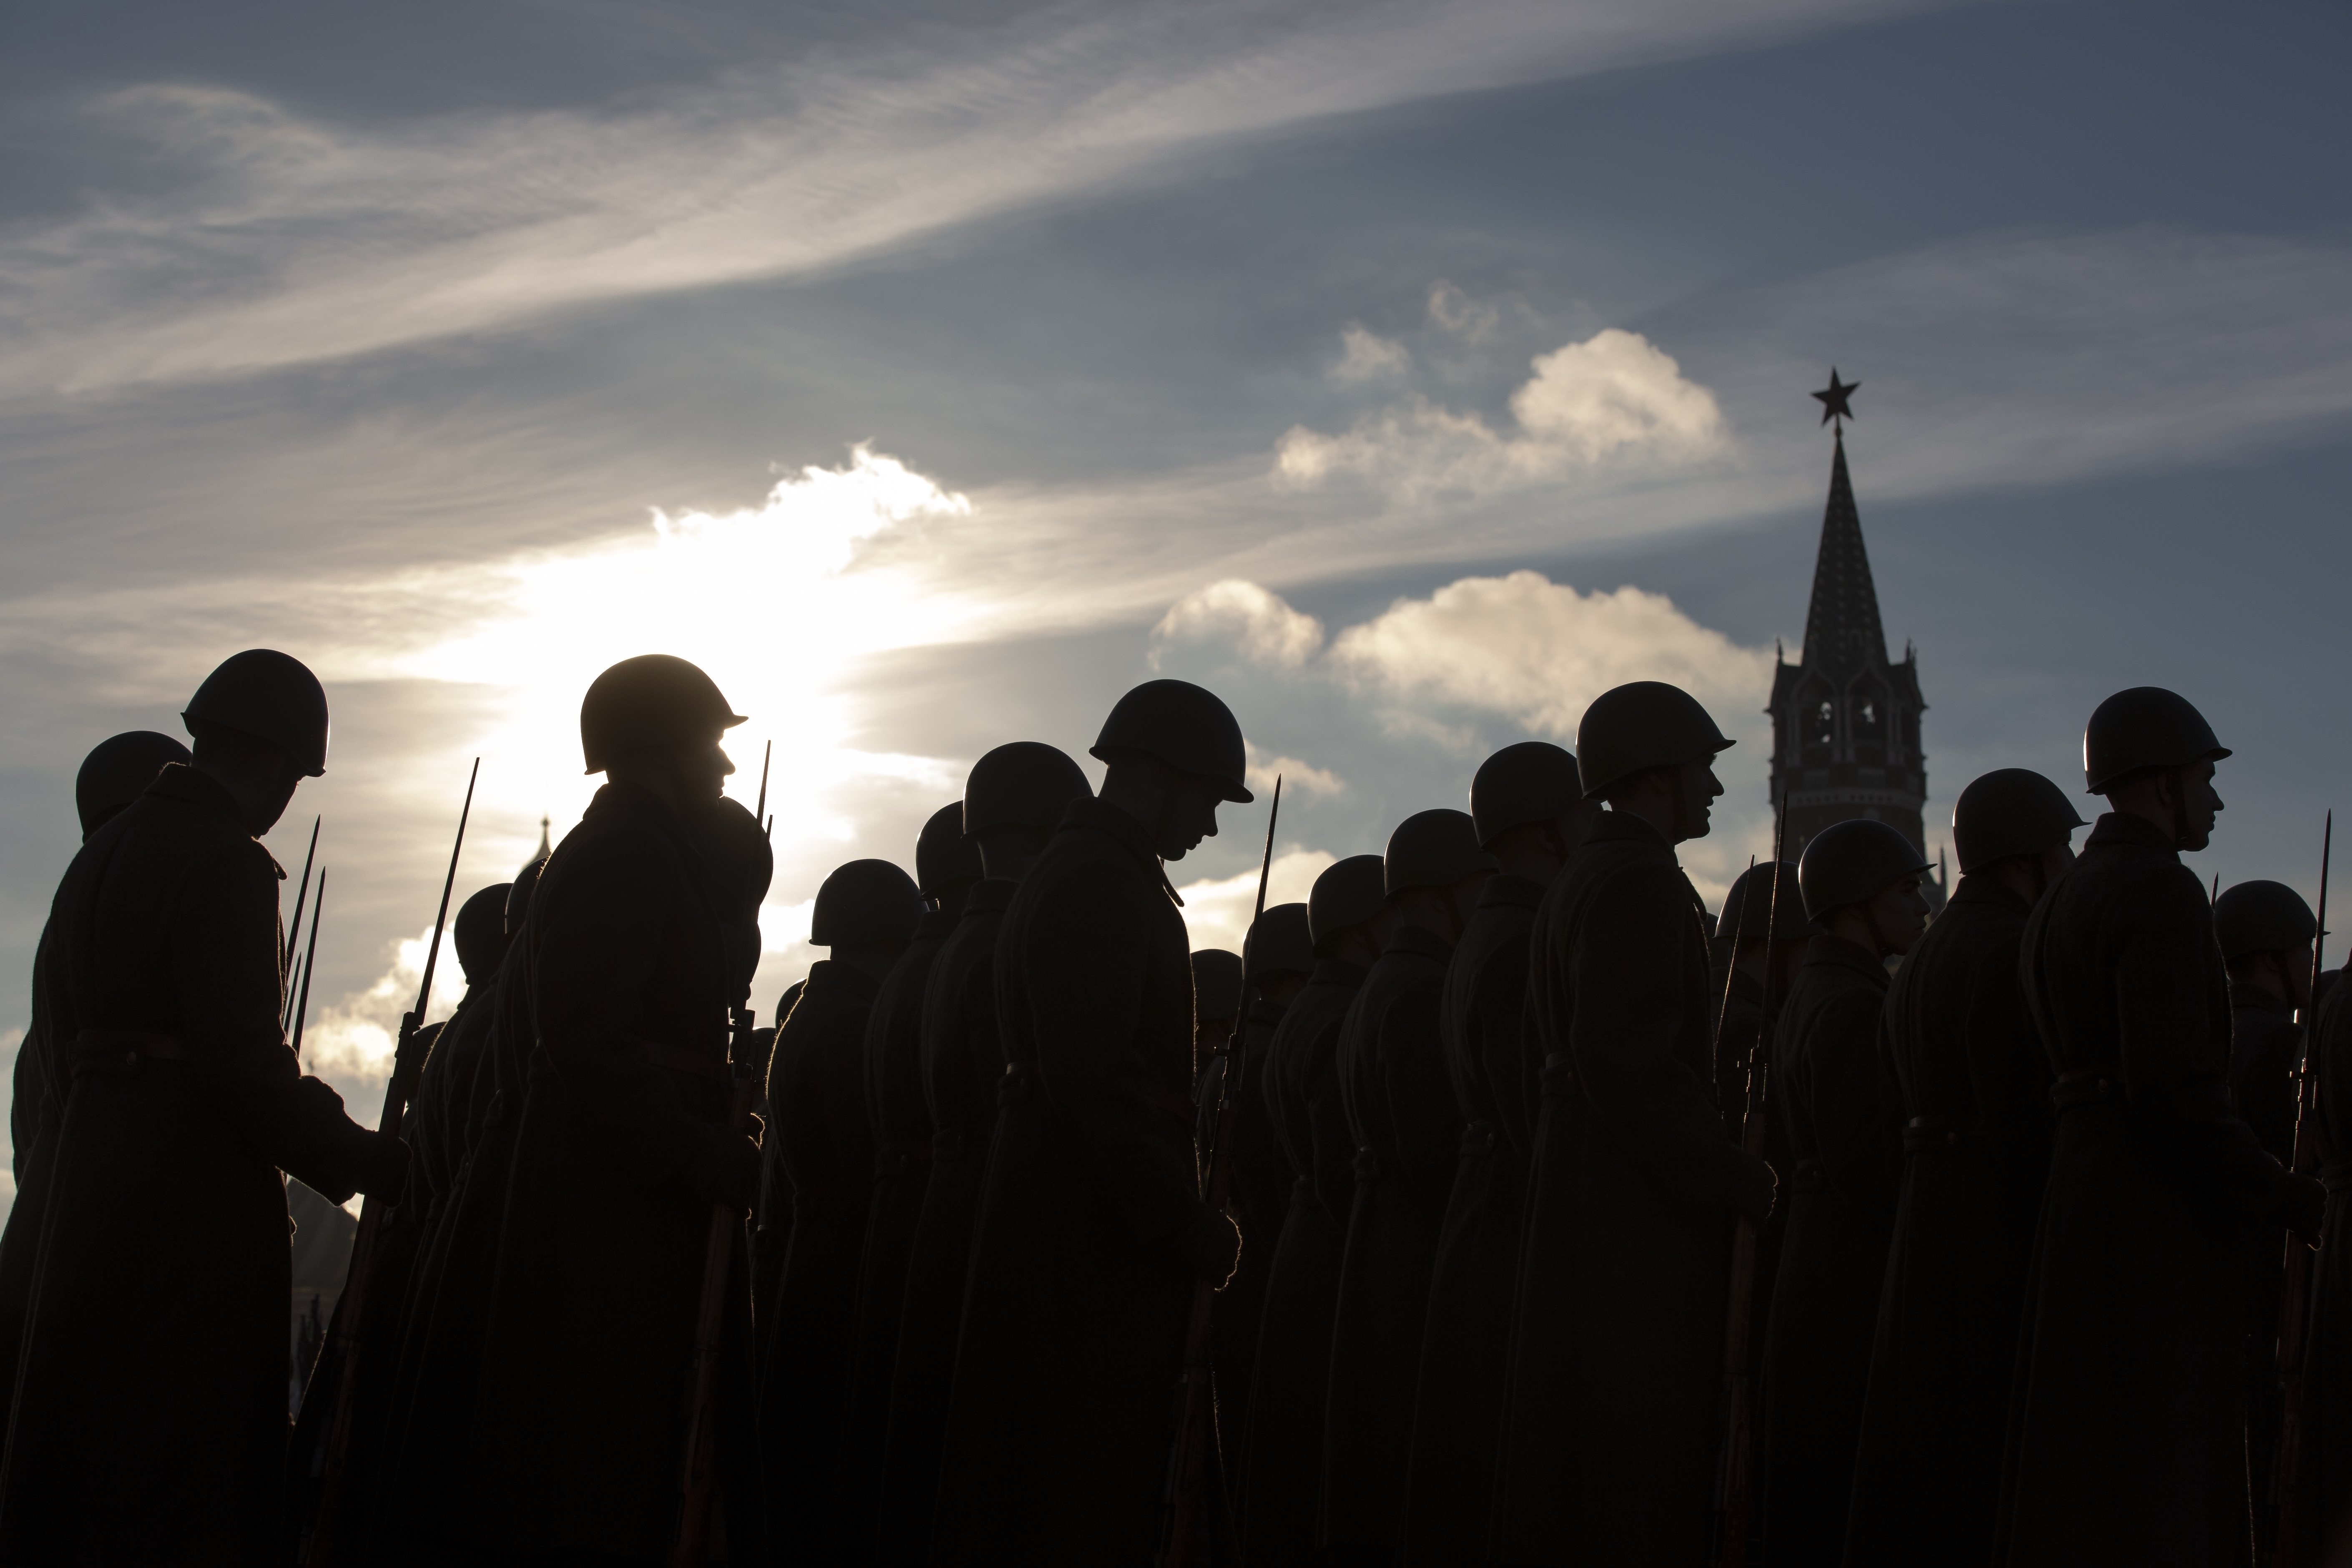 Russian soldiers dressed in Red Army World War II uniforms stand prior to the start of a rehearsal of the Nov. 7 parade in Red Square, with the Spasskaya Tower in the background, in Moscow, Russia, Monday, Nov. 5, 2018. The parade marks the 77th anniversary of a World War II historic parade in Red Square and honored the participants in the Nov. 7, 1941 parade who headed directly to the front lines to defend Moscow from the Nazi forces. (AP Photo/Alexander Zemlianichenko)